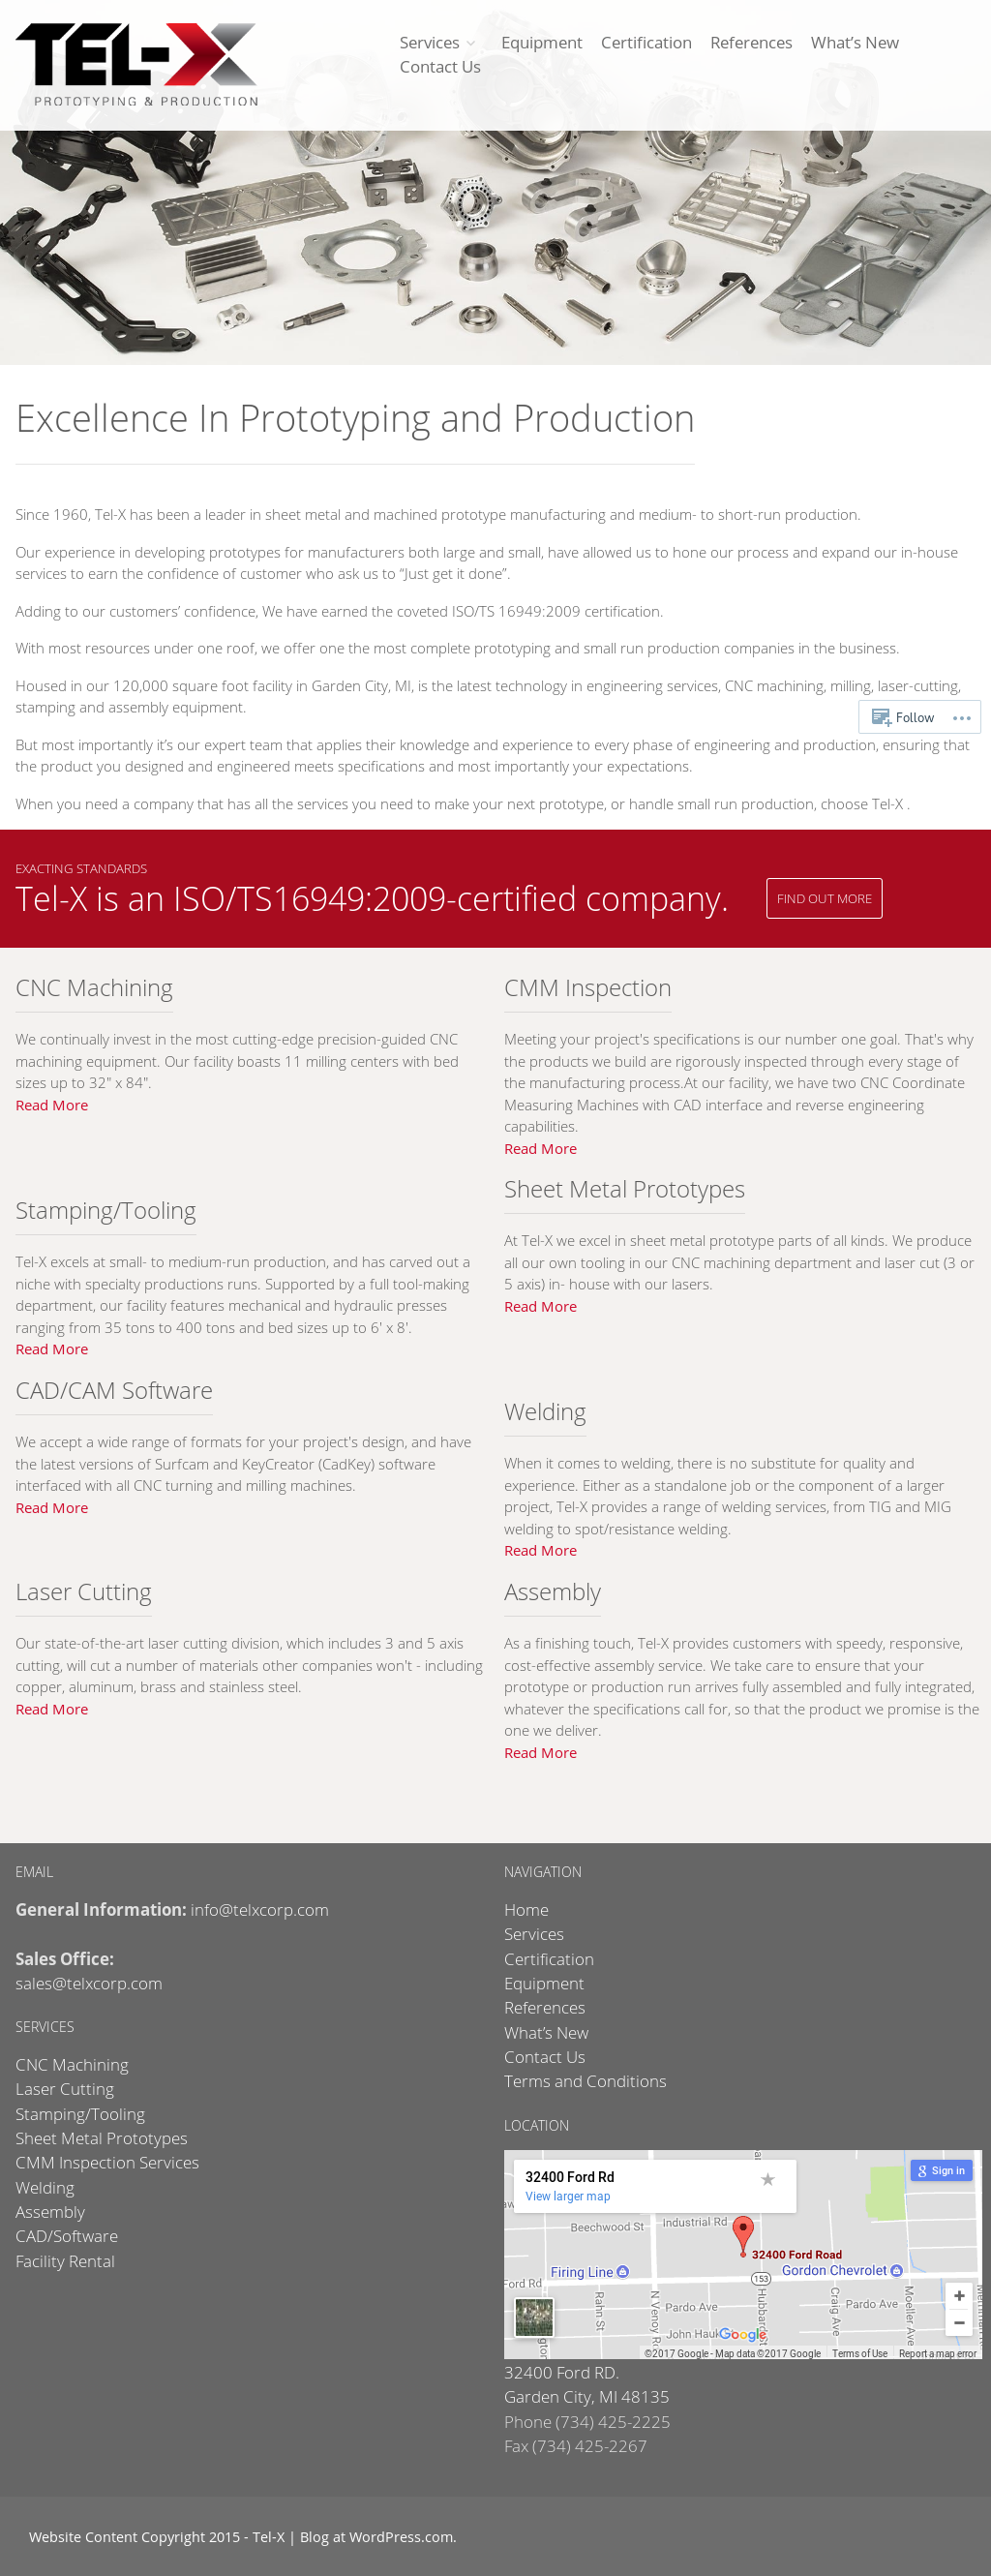 TelX Corporation Website History